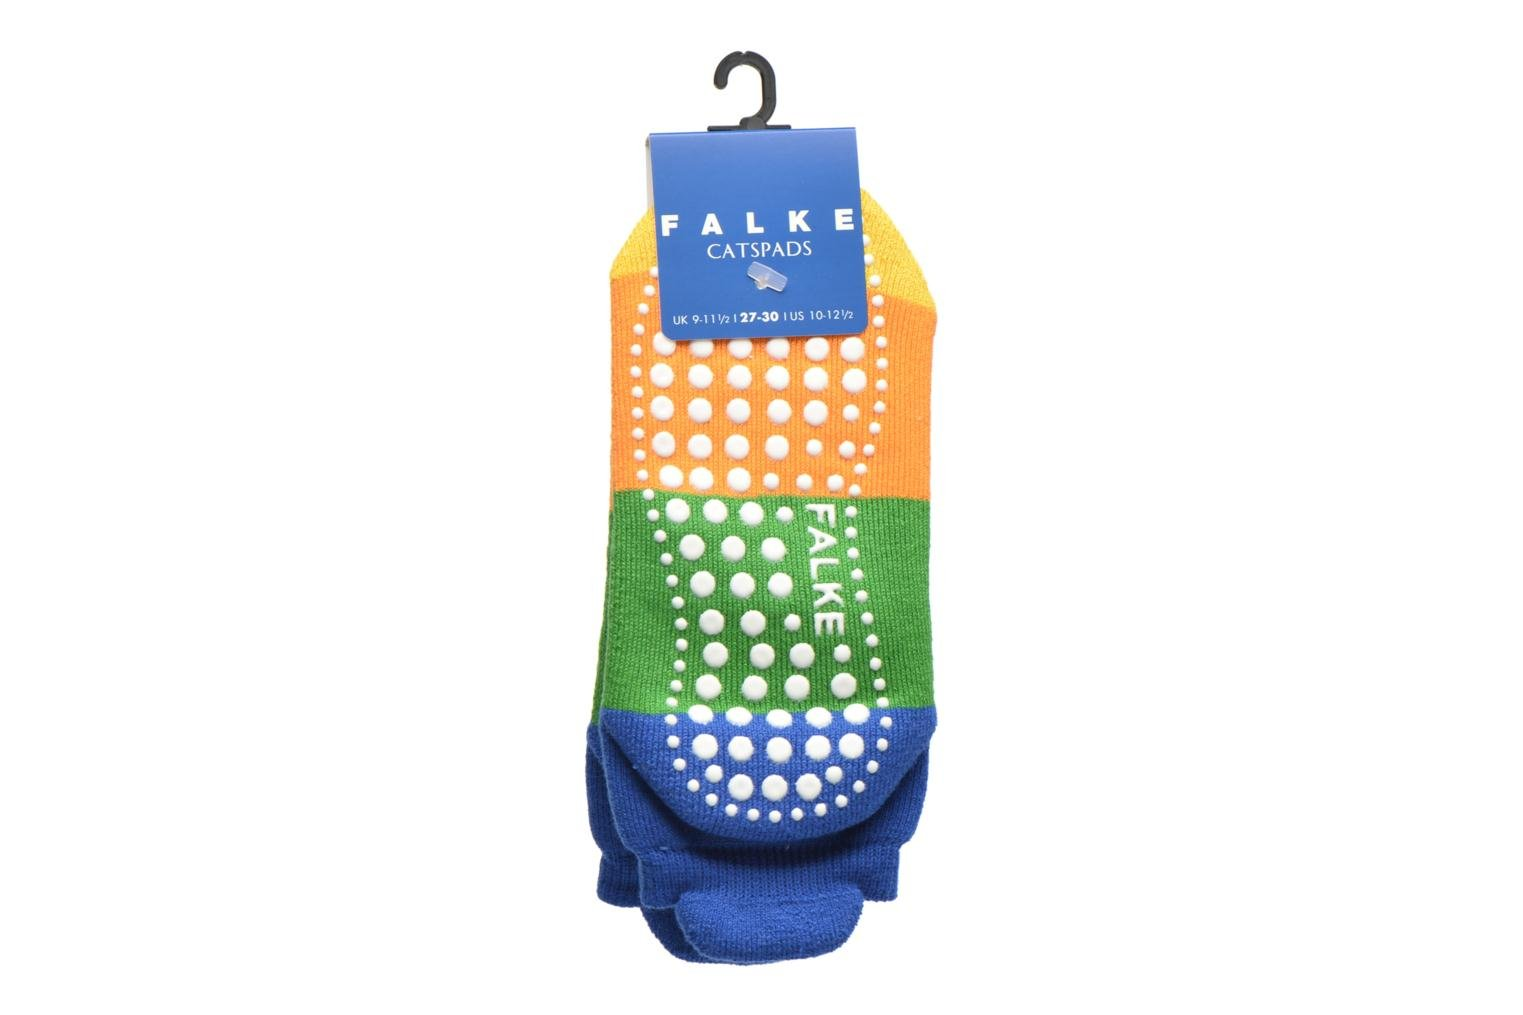 Chaussons-chaussettes Colour Block Catspads 6055